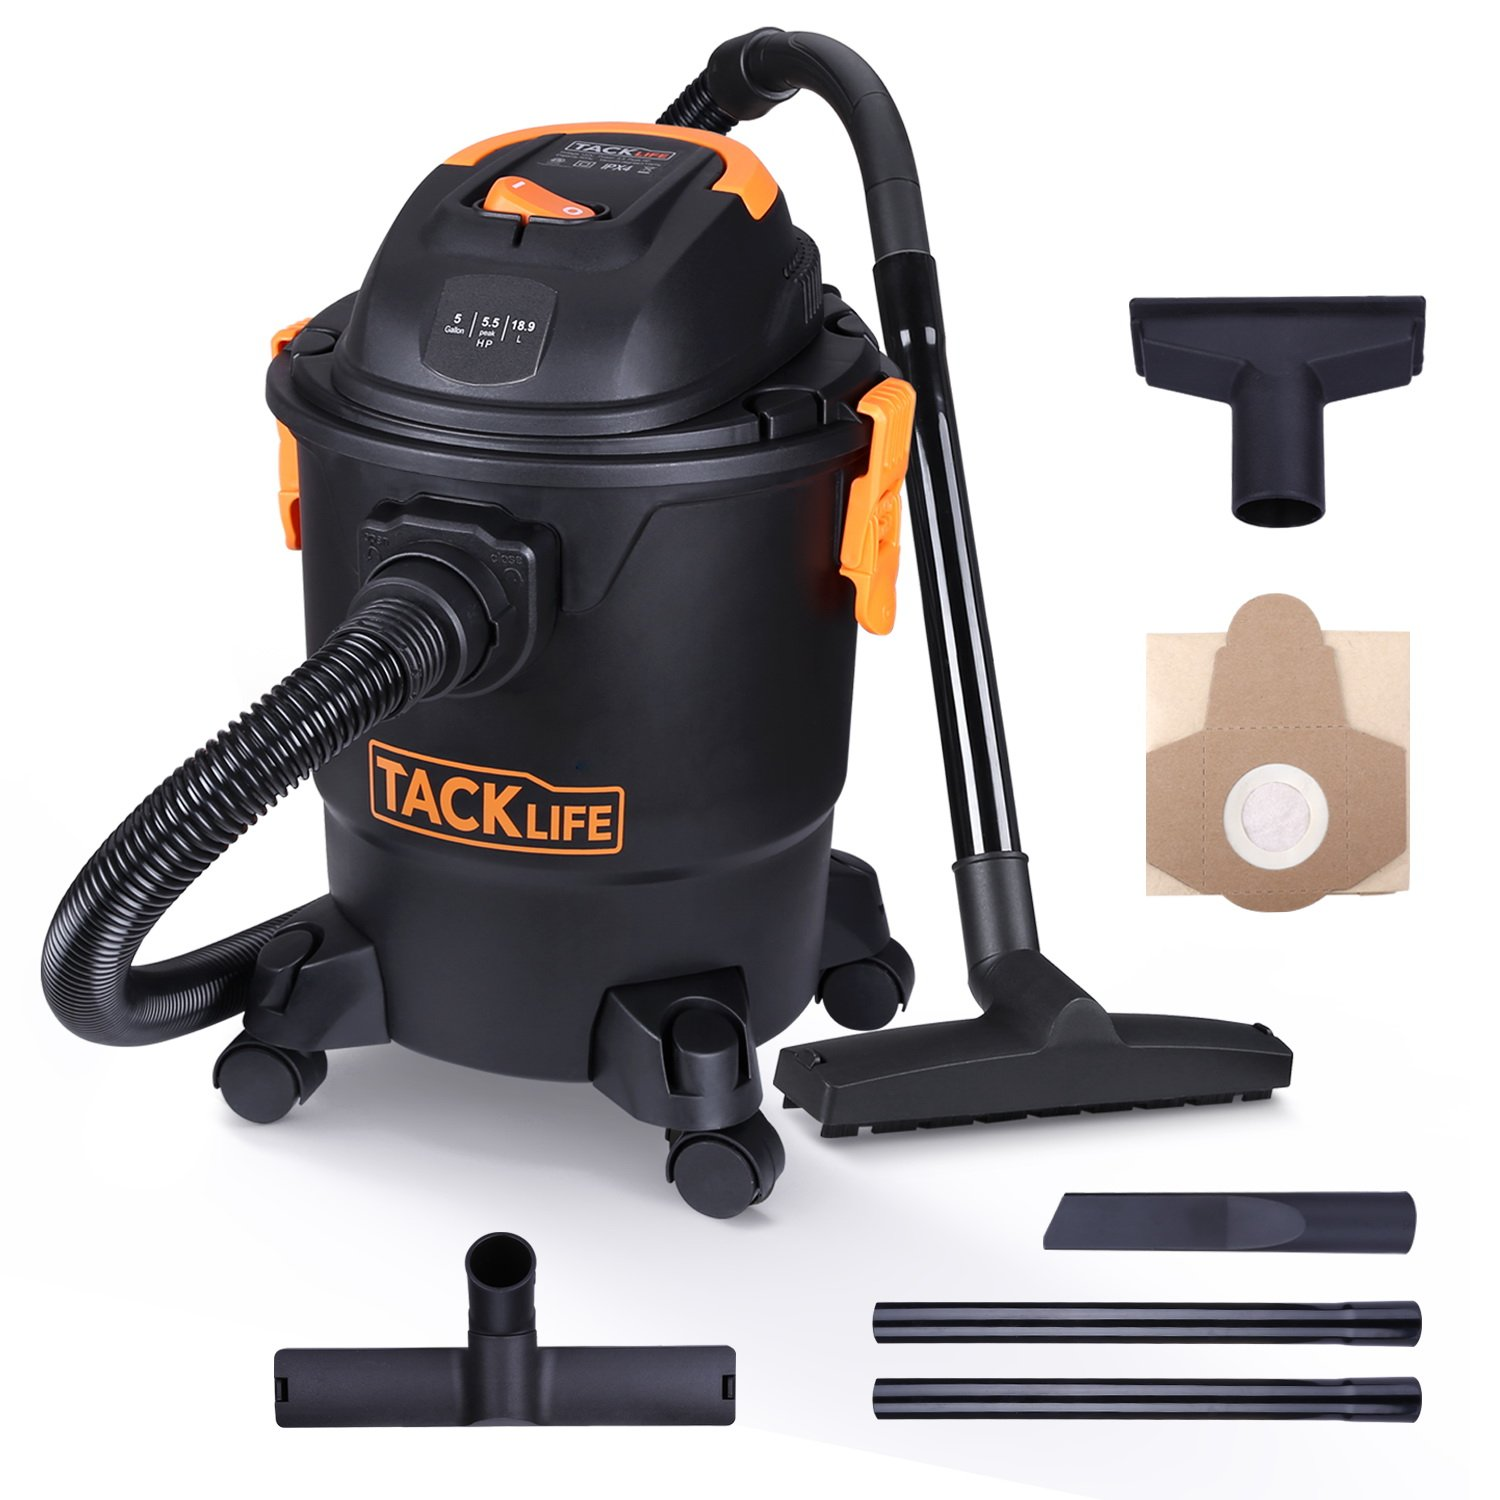 Tacklife Wet Dry Vacuum 5 Gallon, 5.5 Peak HP with 20 FT Clean Range, 4-layer Filtration System and Safety Buoy Technology for Dry/Wet/Blowing, Multipurpose Accessories Included - PVC01A